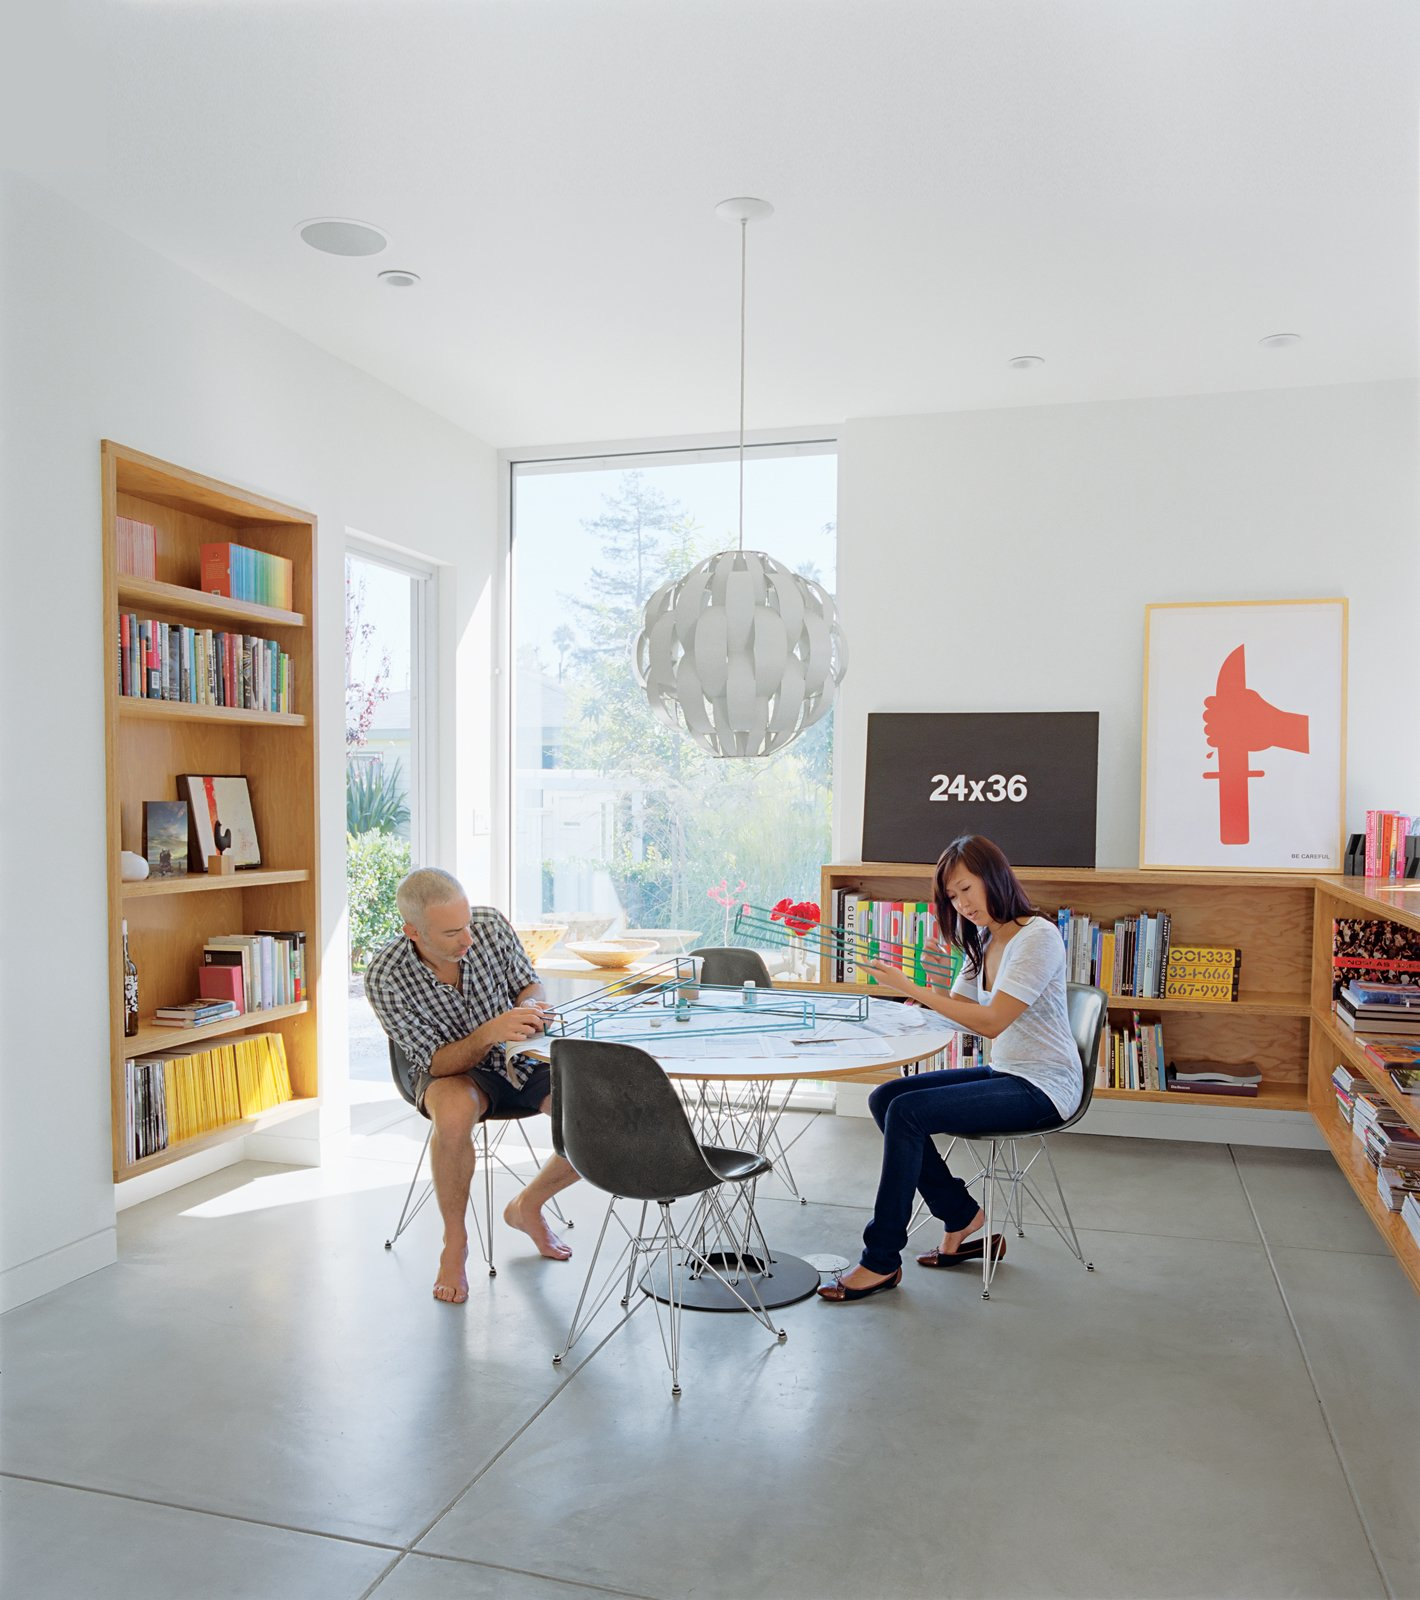 """The dining room is meant to be a flexible space for eating or dancing. """"One of the most important things for me,"""" explains Grunbaum, """"is how a house feels. It has to be a place where you don't want to leave."""" The Cyclone table is by Isamu Noguchi for Knoll and the pendant lamp is by Lightoiler.  Photo 3 of 11 in Daft Punk Could Play at This House from Photographer Q&A: Ye Rin Mok"""